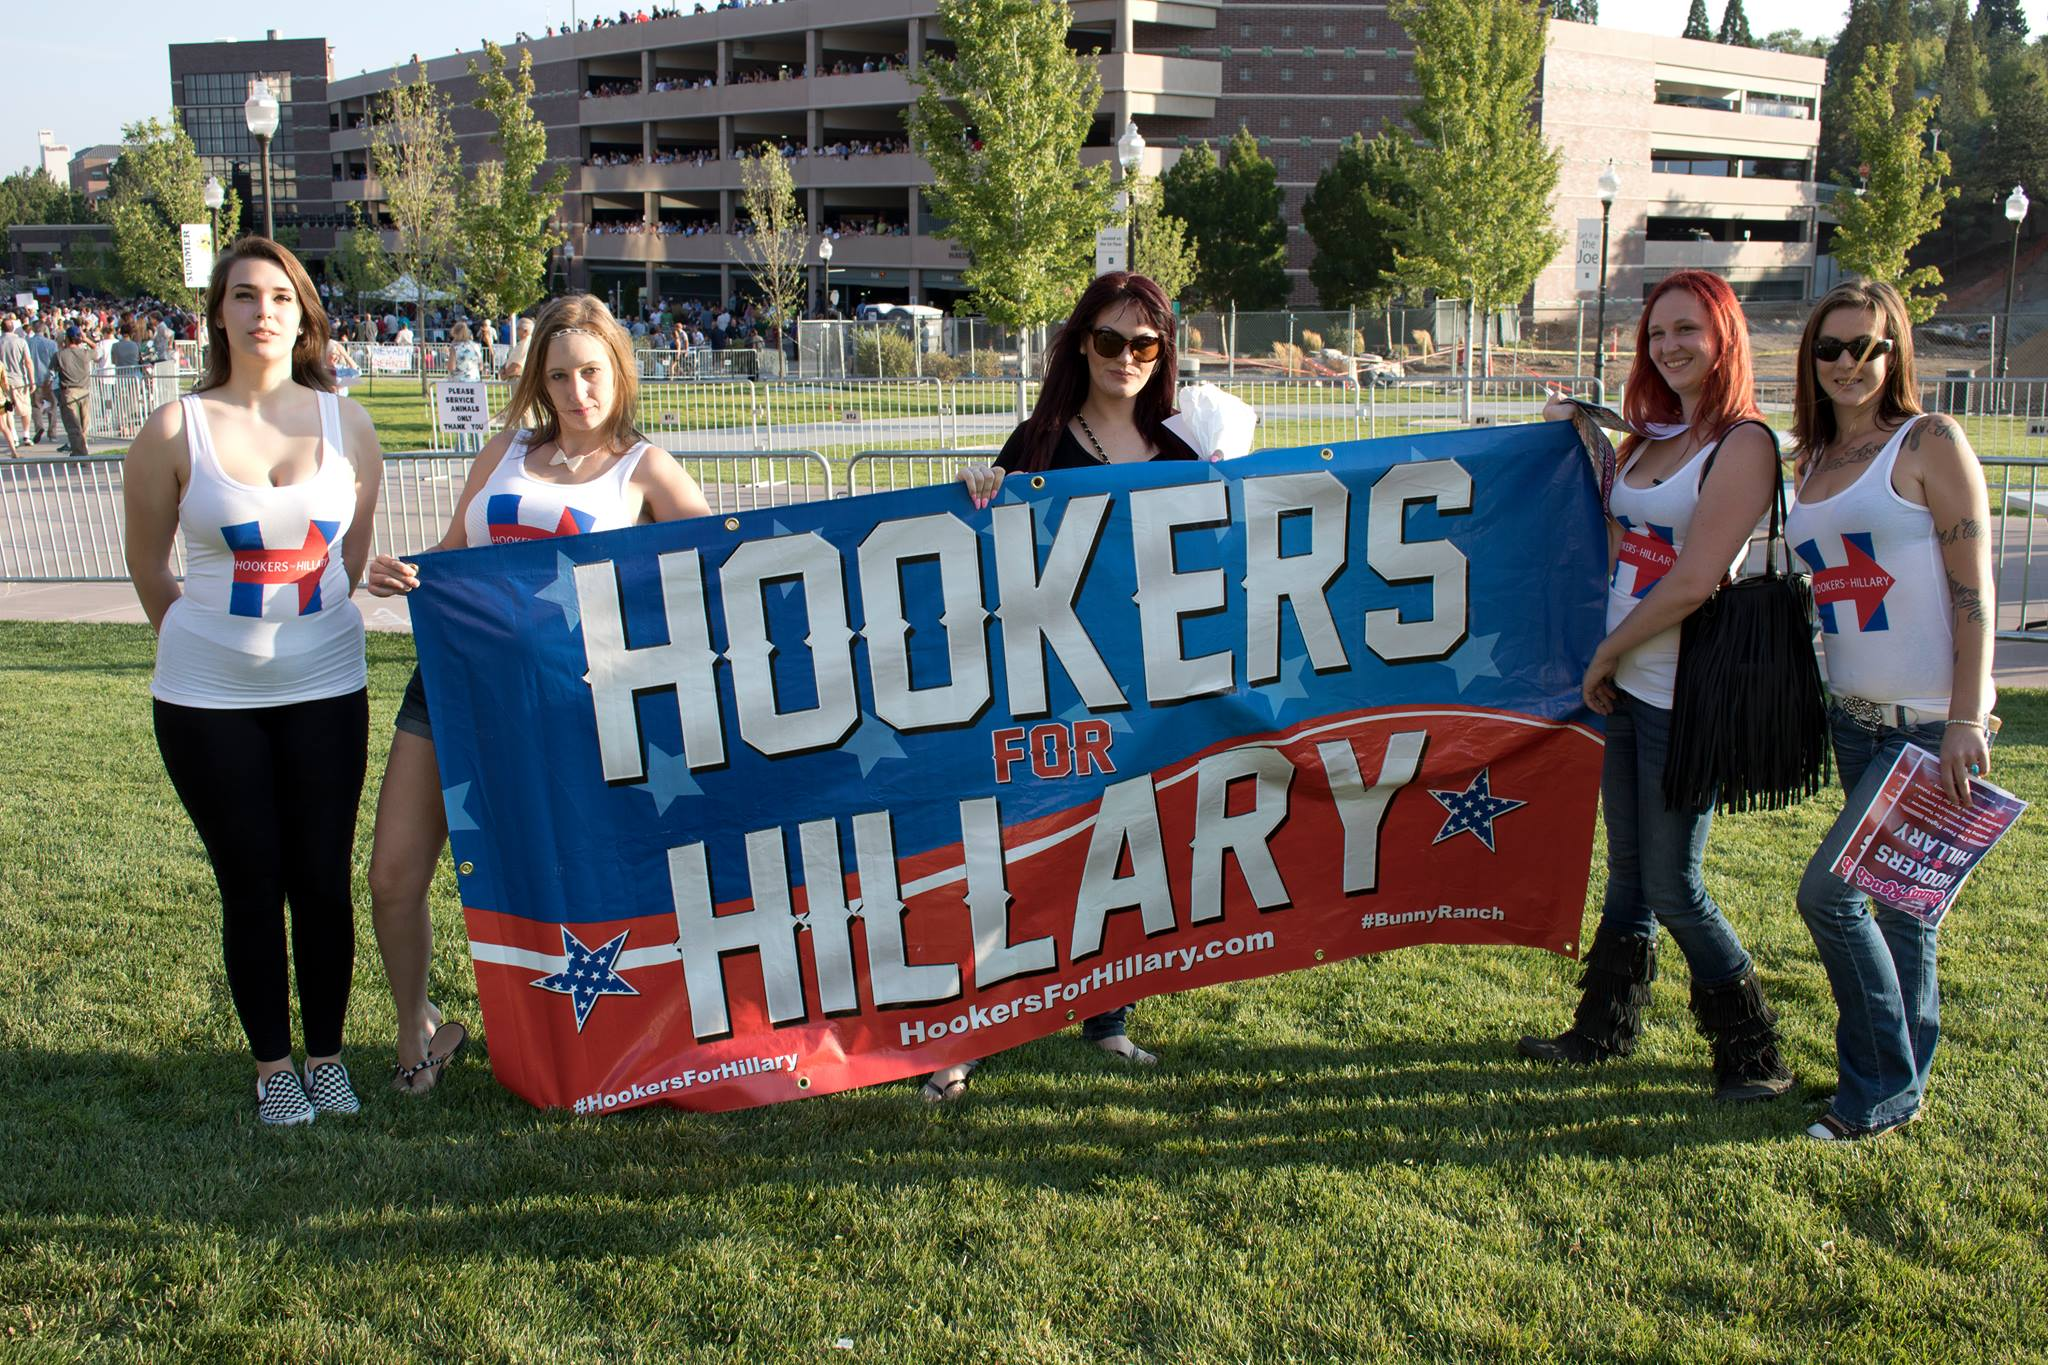 Hookers 4 Hillary at a Bernie Sanders rally at the University of Nevada, Reno on Tuesday, Aug. 18, 2015. (Hookers 4 Hillary)